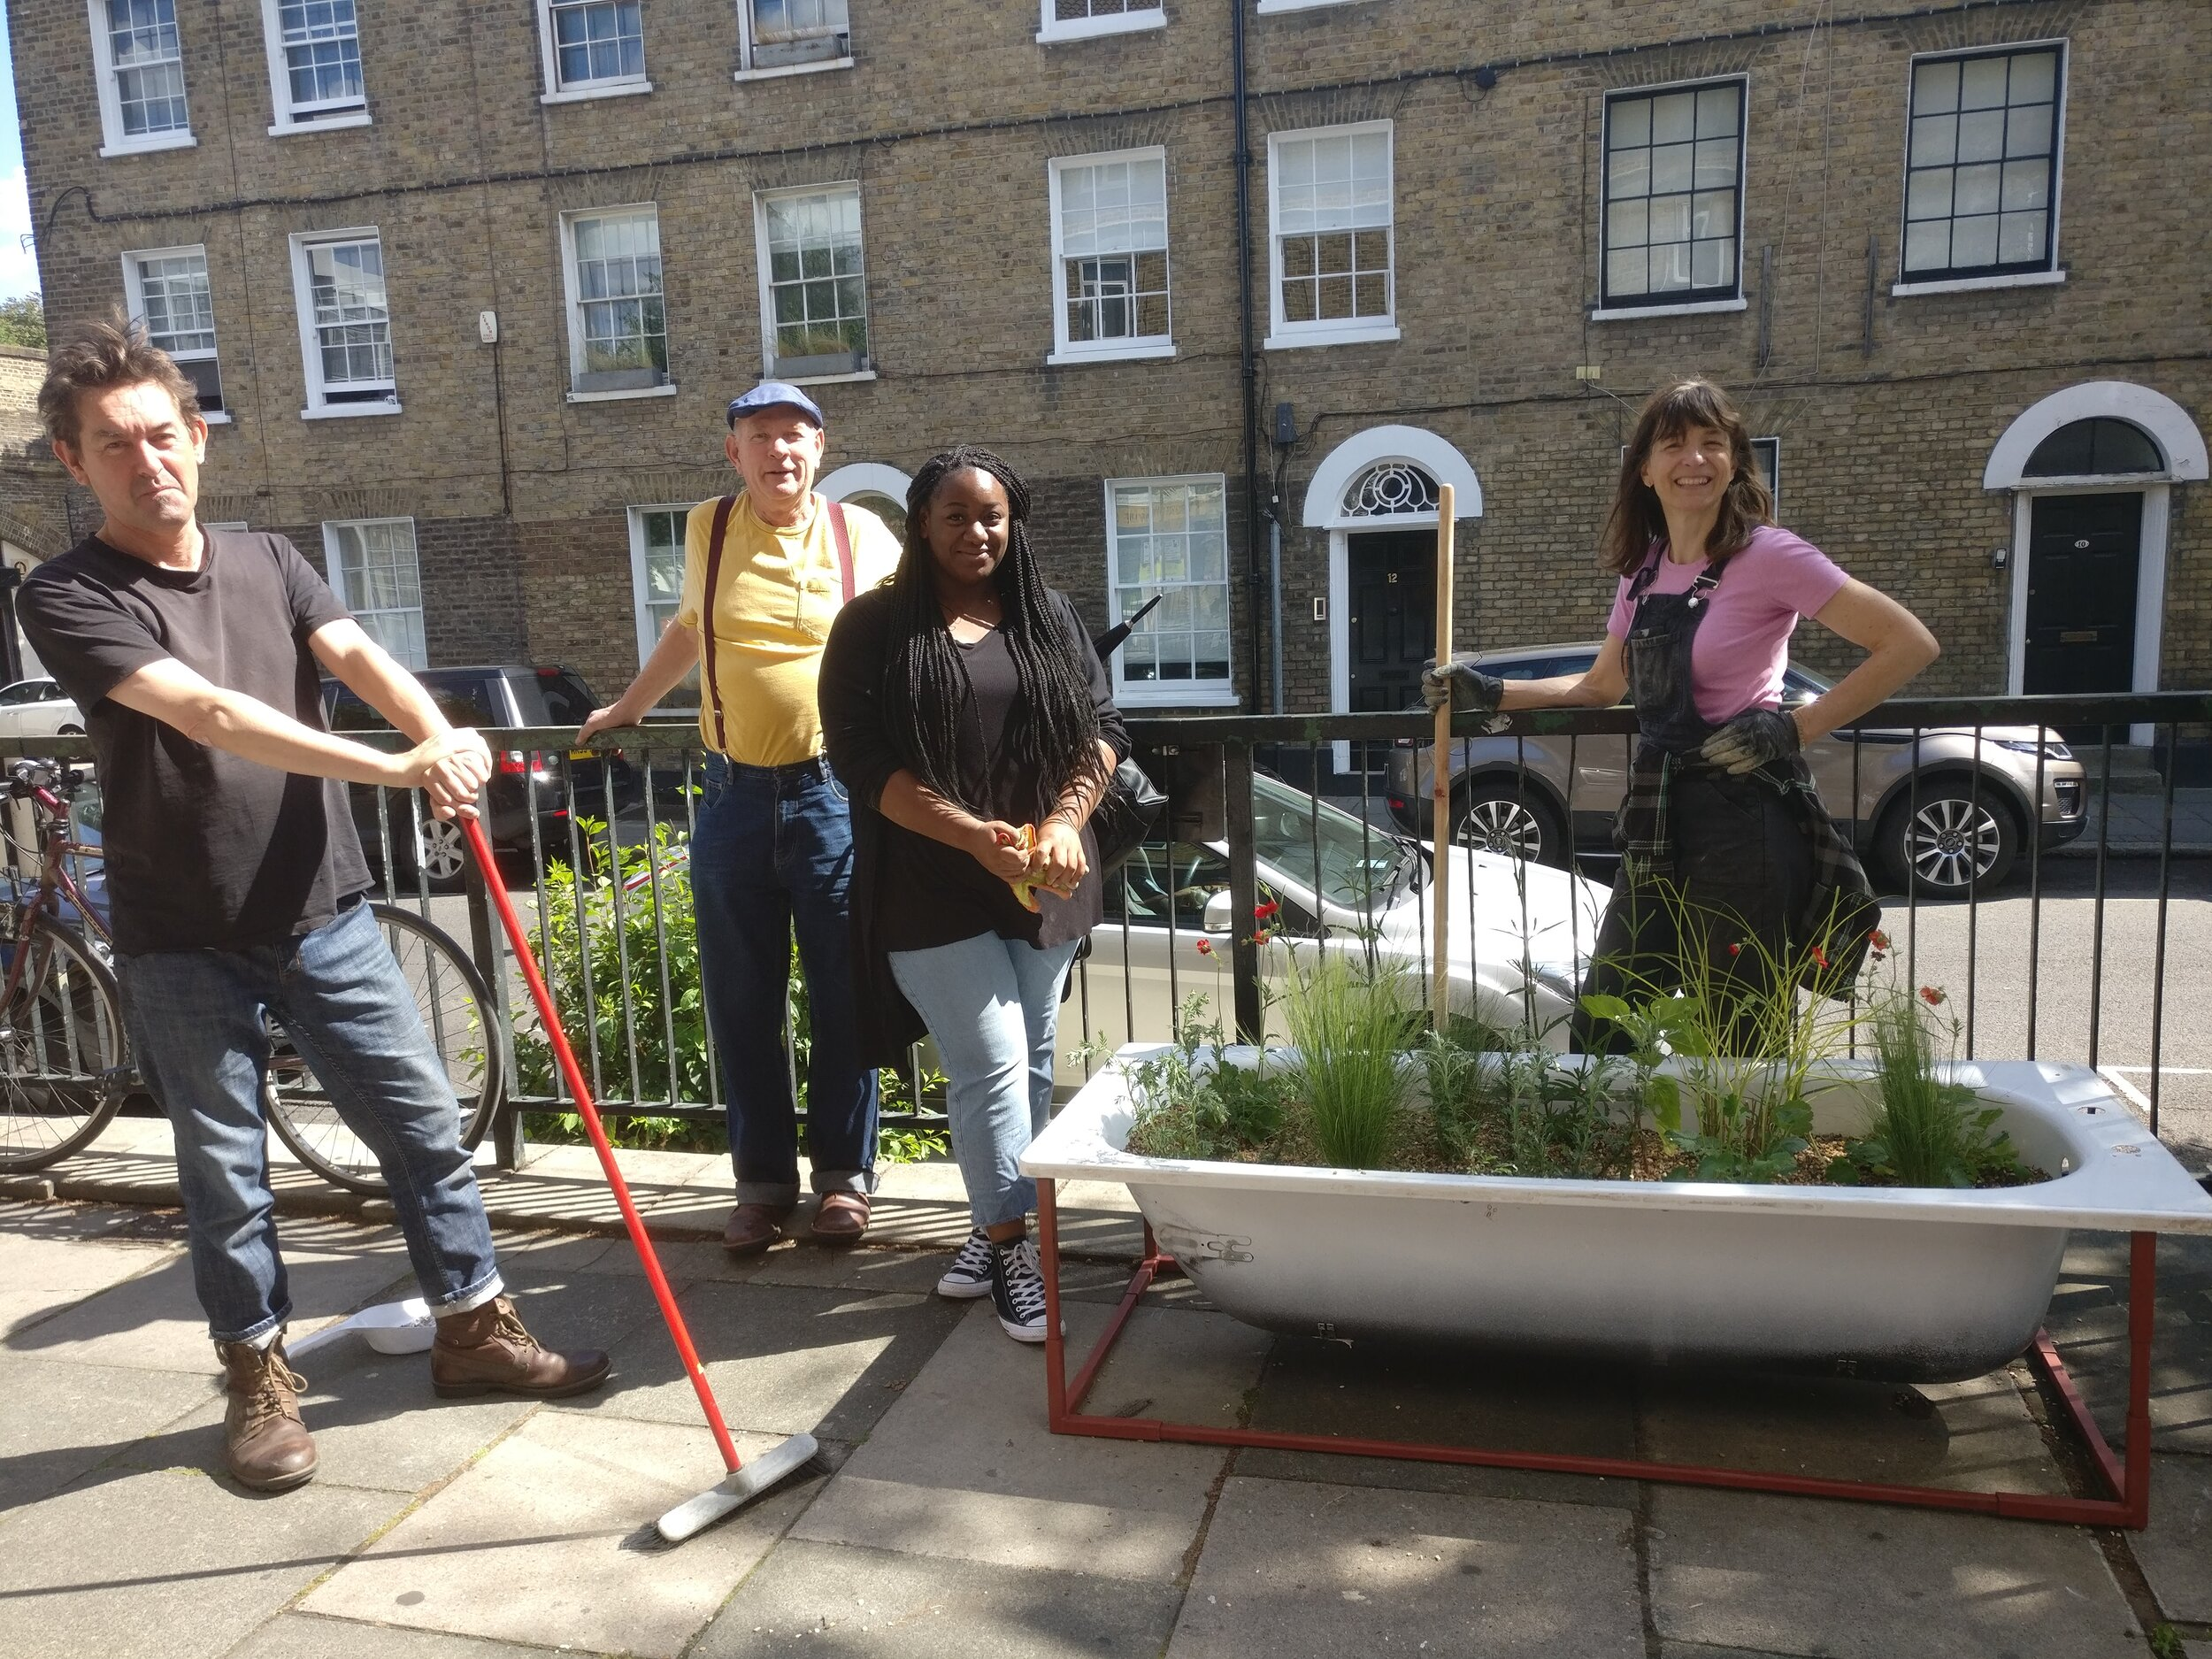 Graham from Hundred Years Gallery with Adopt a Tub volunteers Peter and Devinya and Chief PEER Garden Designer Jane